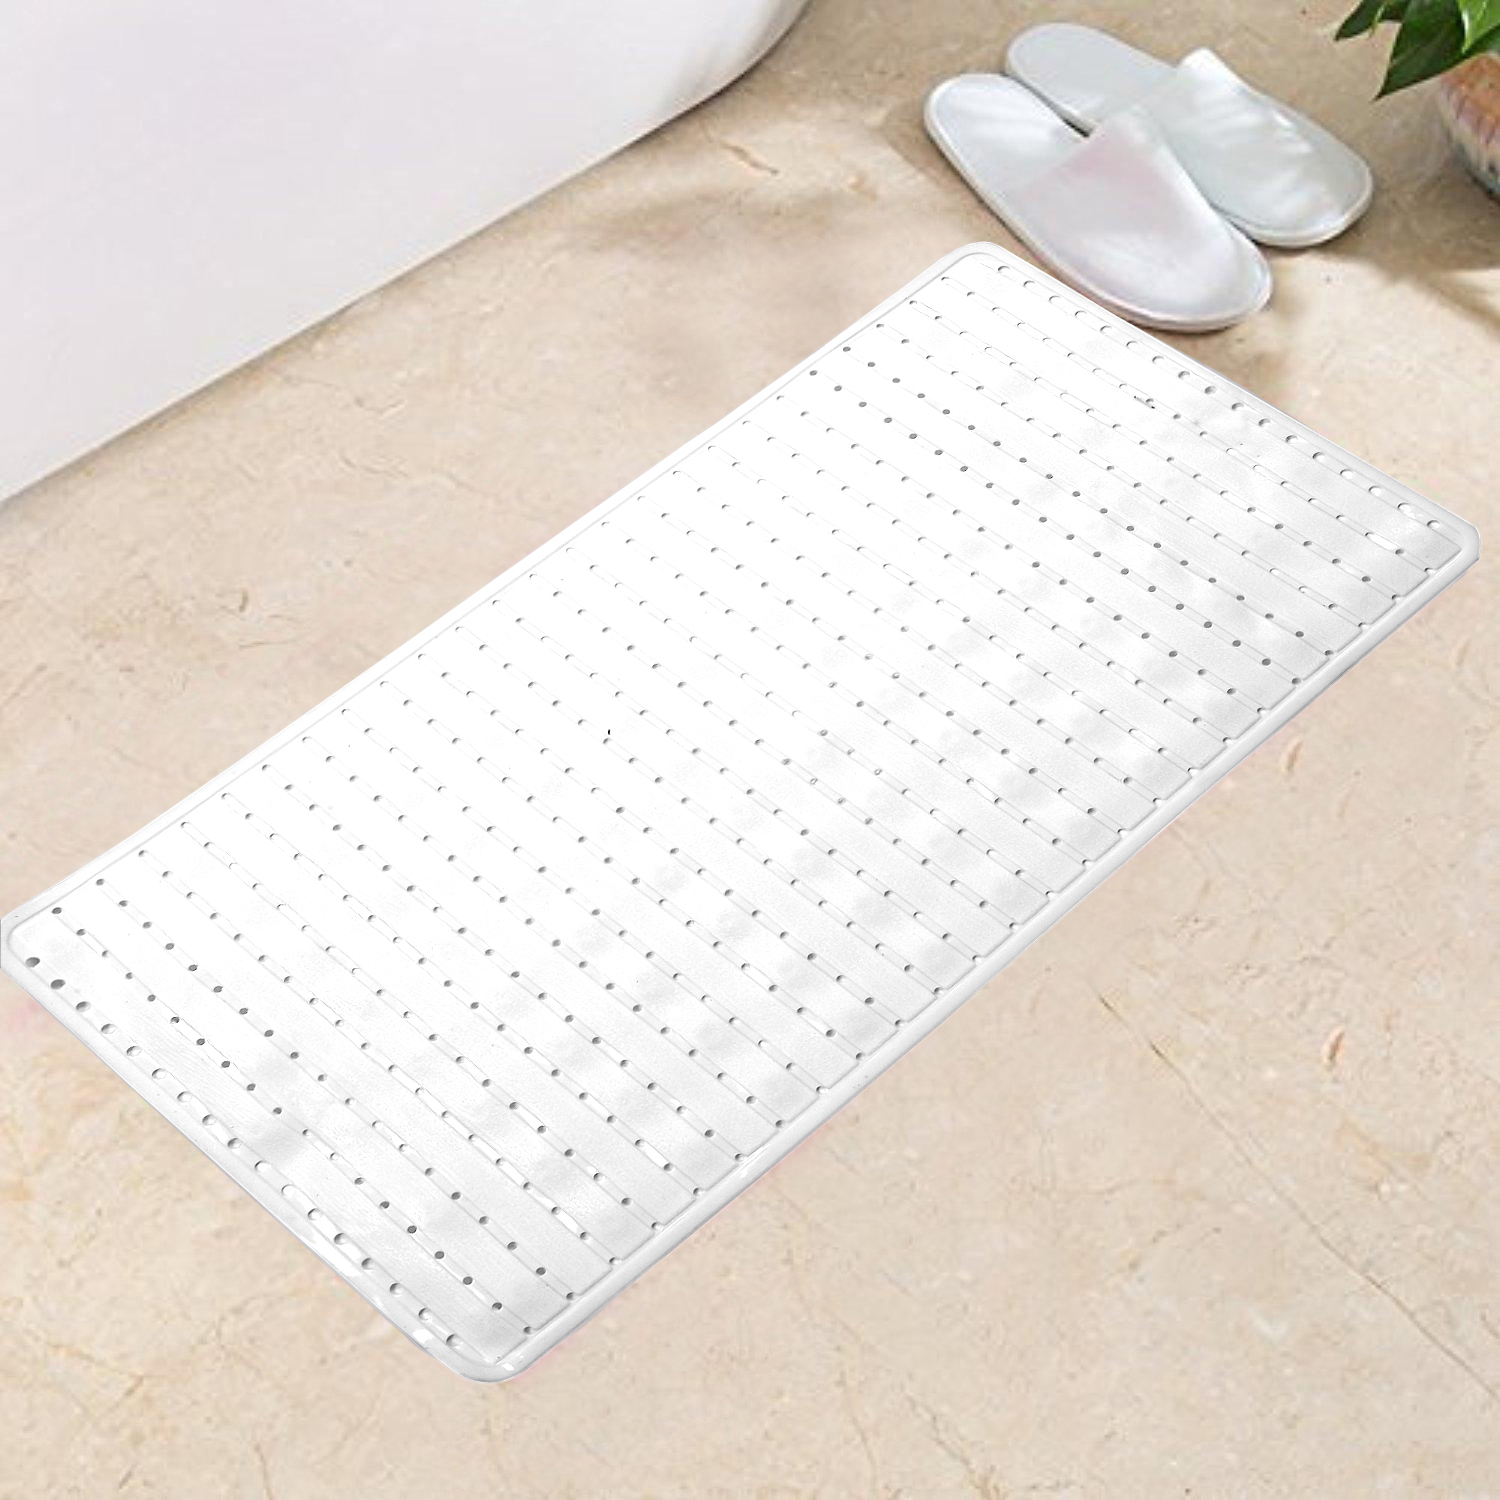 Kuber Industries PVC 1 Piece Bath Mat with Suction Cups (Cream)-CTKTC5586